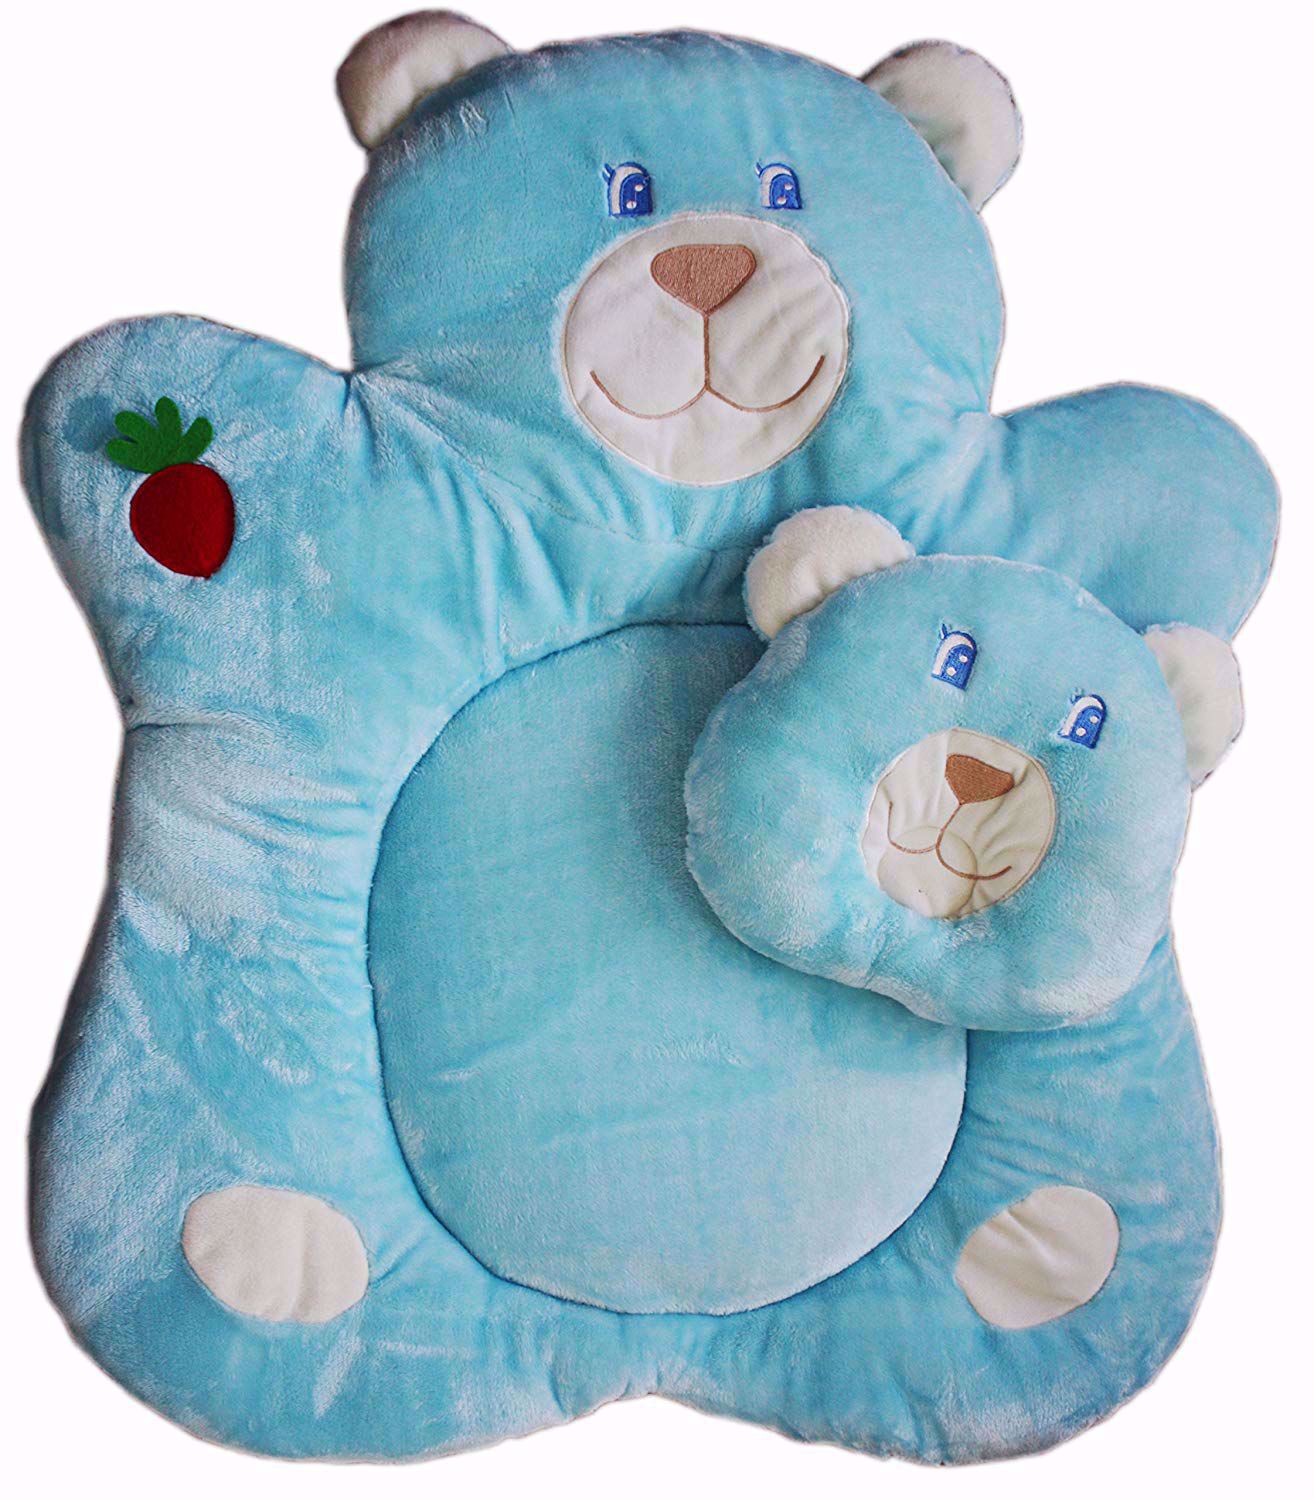 Super Soft Teddy Baby Bedding Set with Pillow, Blue,cute baby bedding sets online